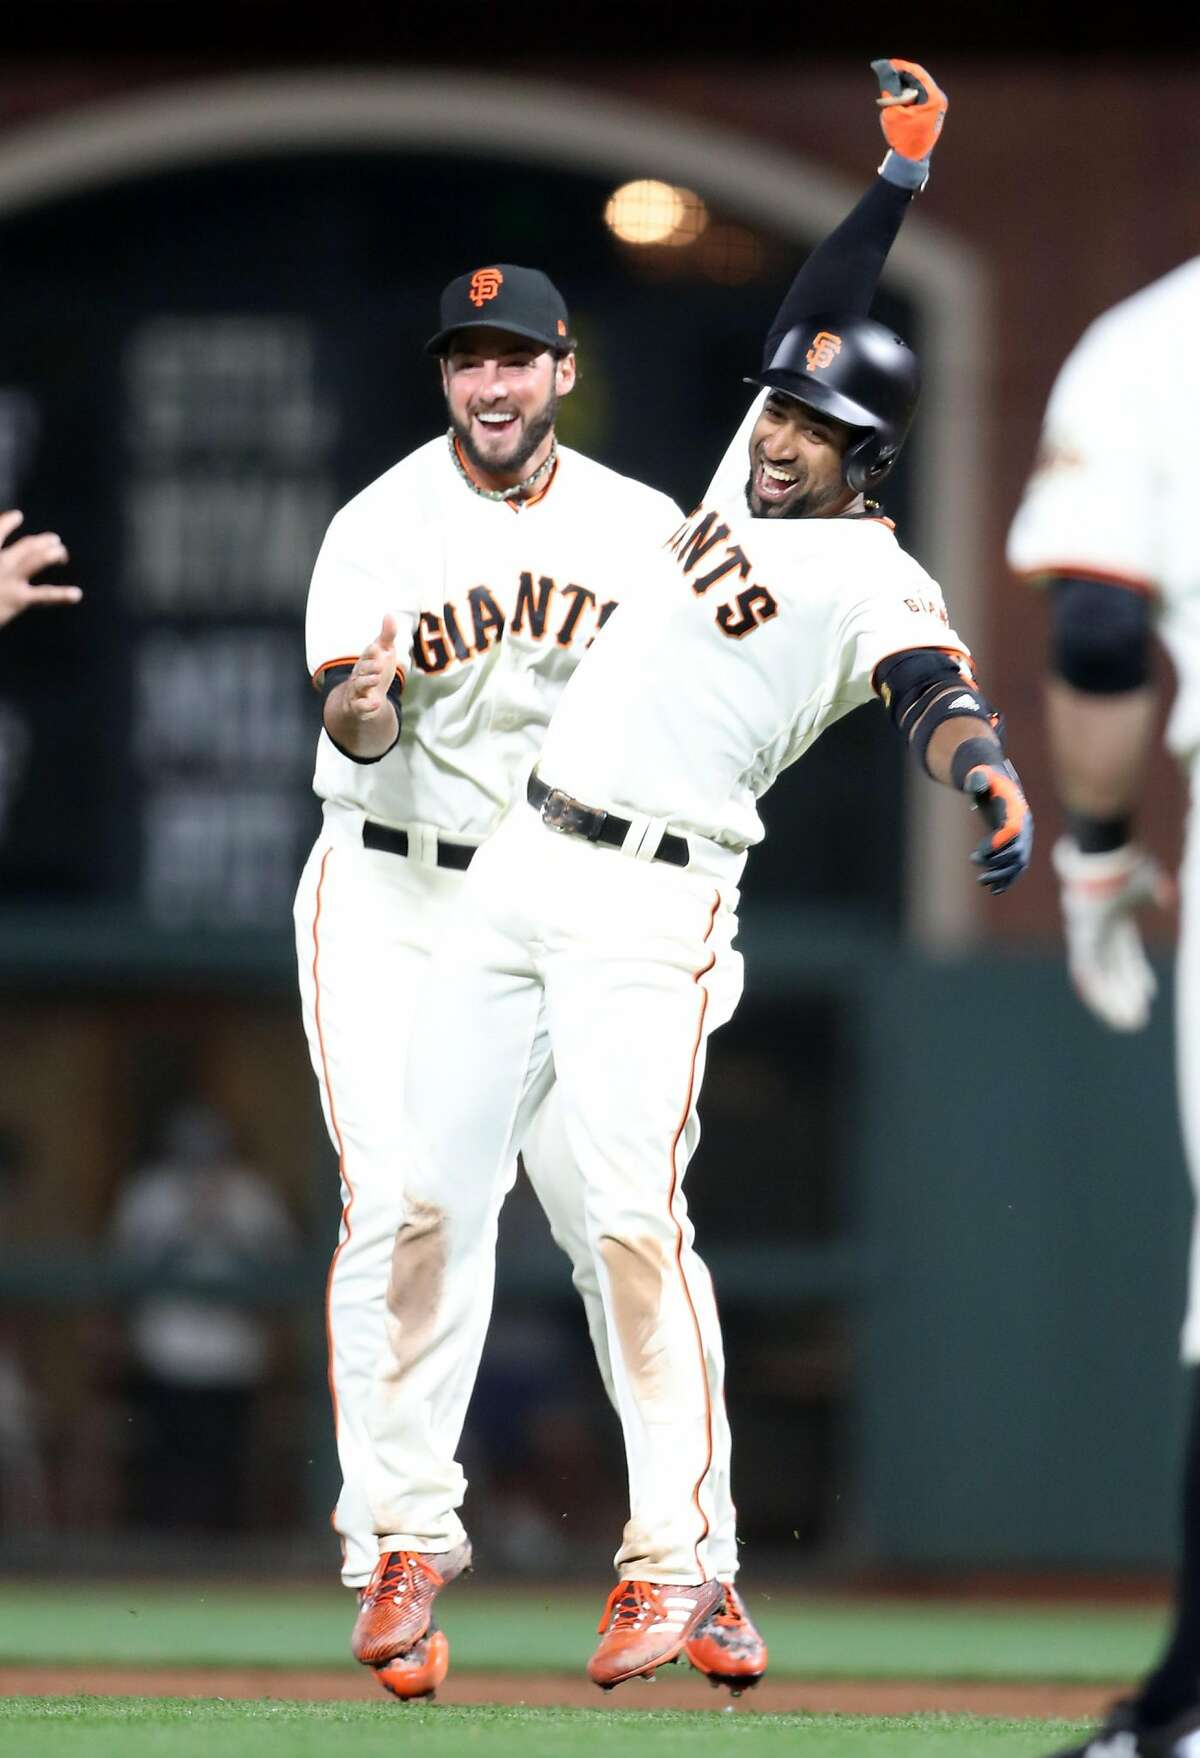 San Francisco Giants' Eduardo Nunez celebrates his game-winning hit with George Kontos in 10th inning of 2-1 win over Cleveland Indians during MLB game at AT&T Park in San Francisco, Calif. on Tuesday, July 18, 2017.